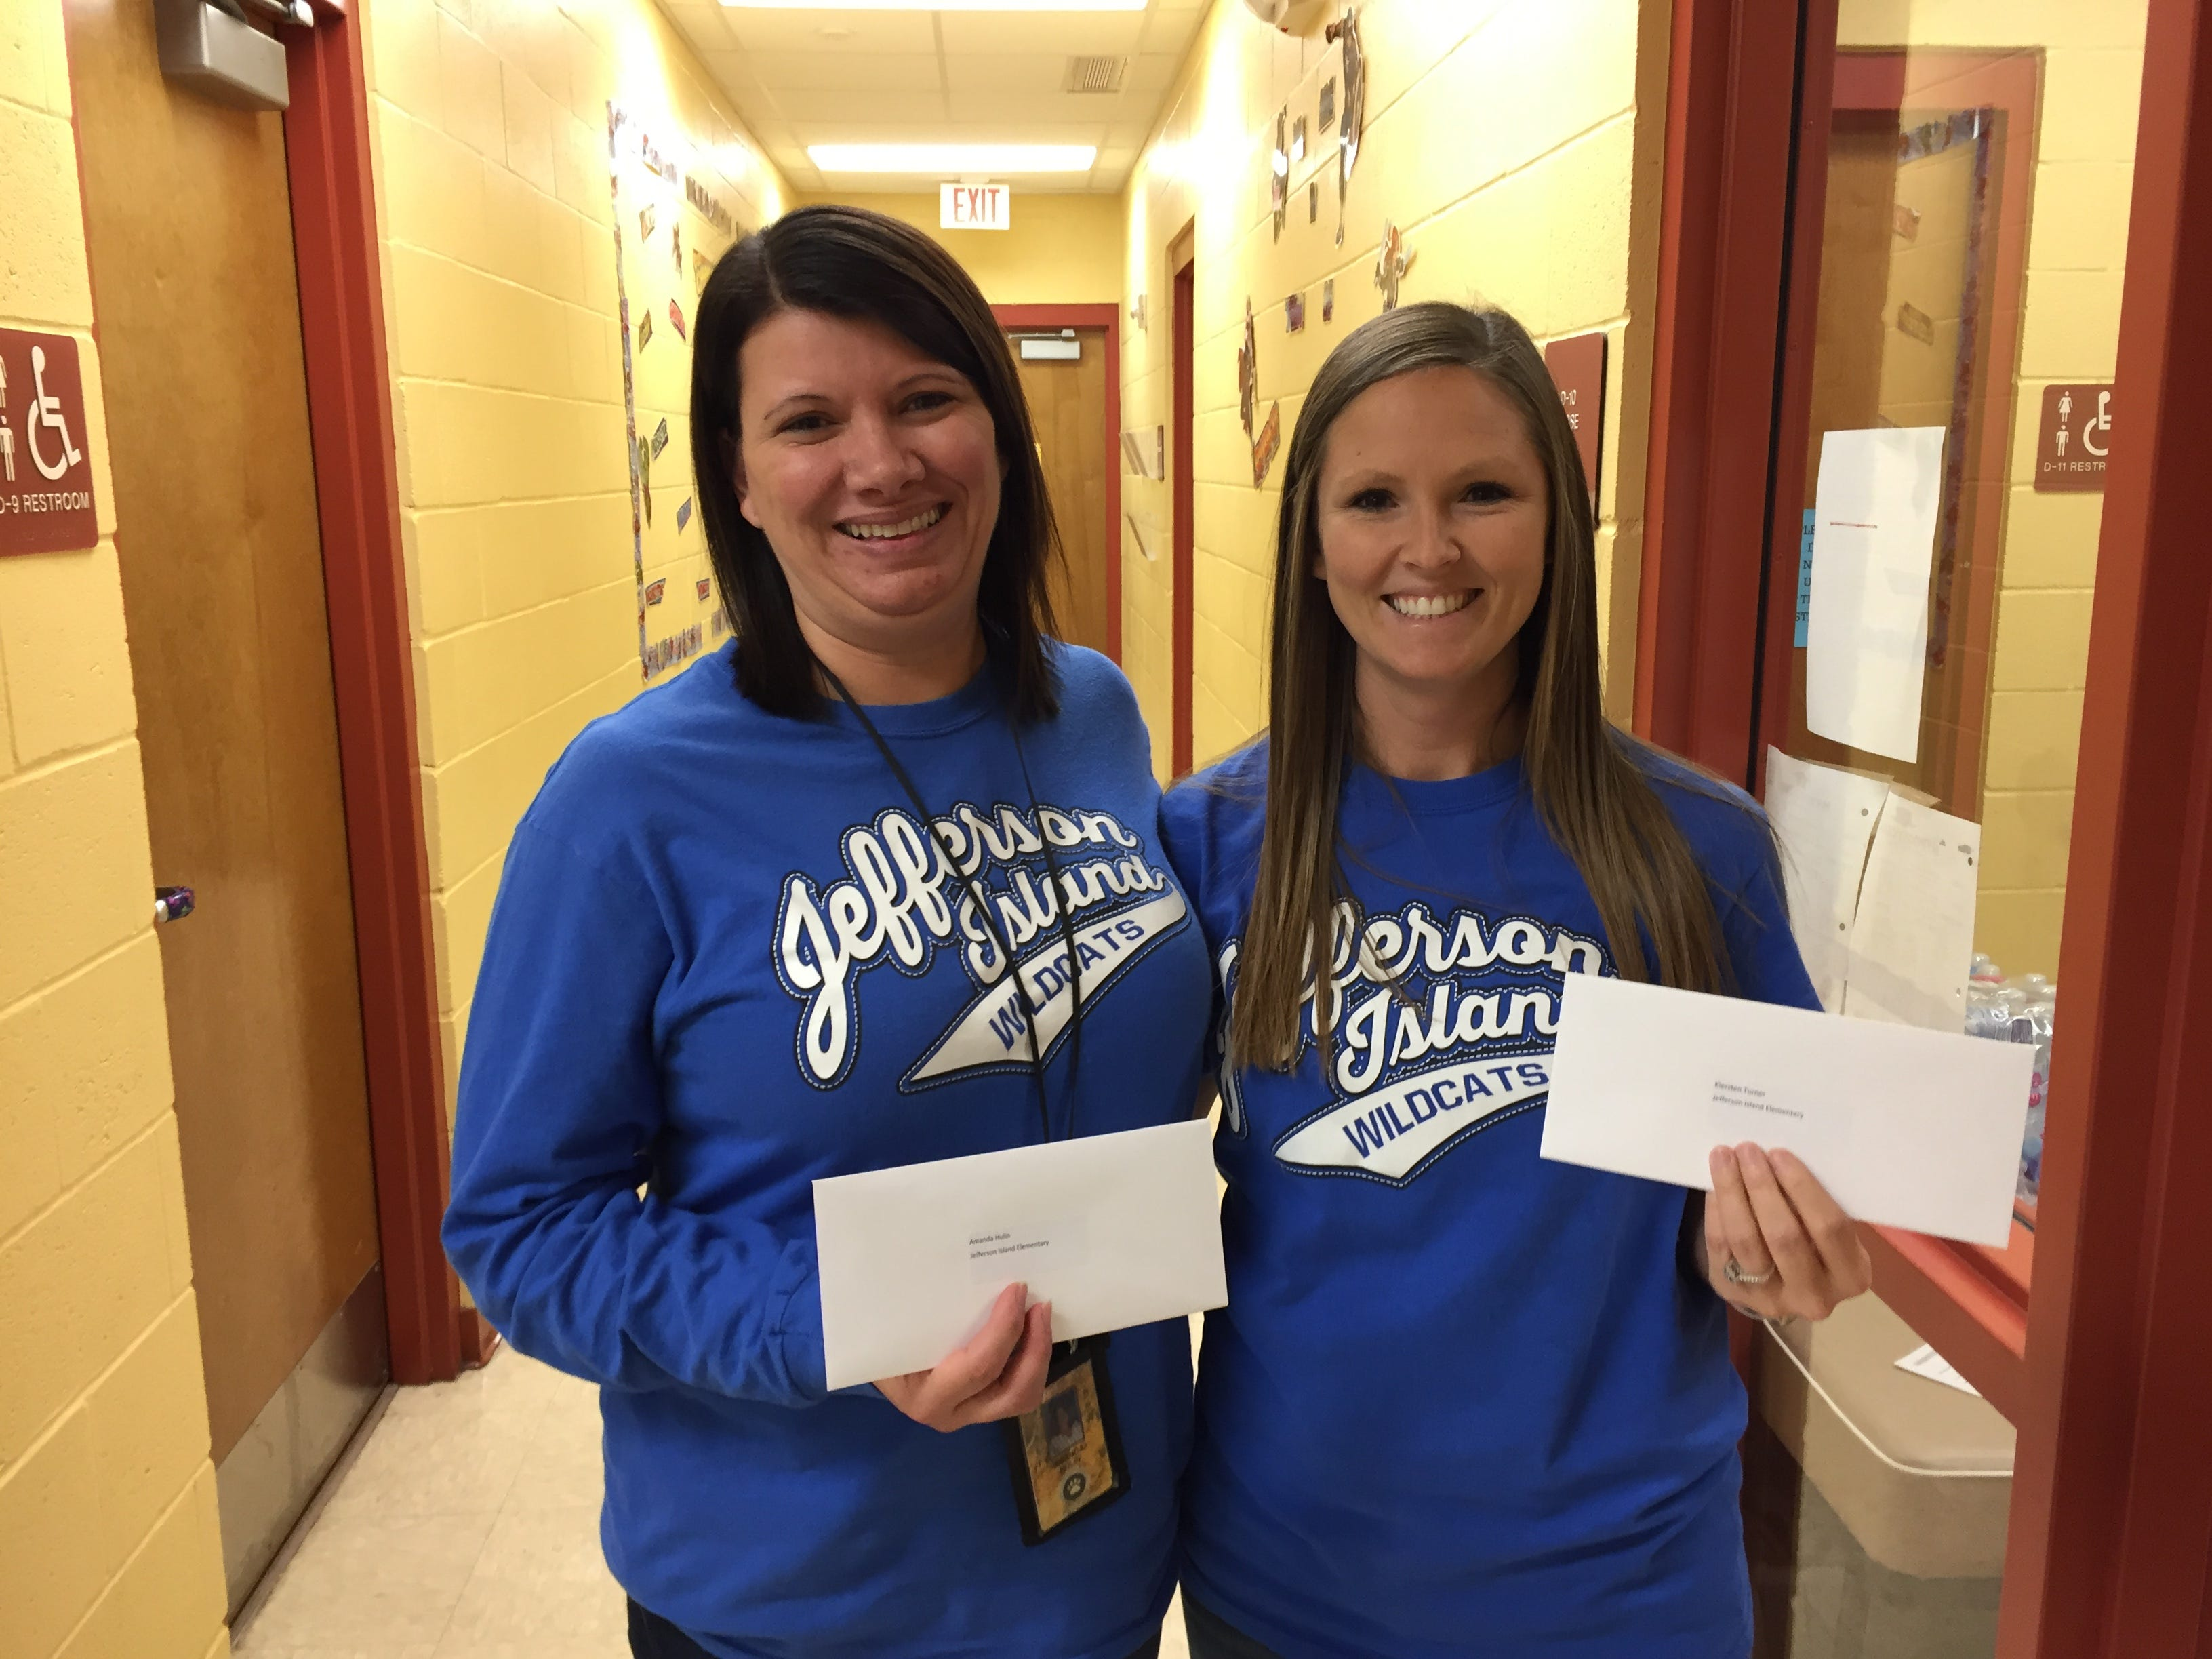 Jefferson Island Elementary teachers Amanda Hulin, left, and Kiersten Turner each received a gift card as a part of The Daily Advertiser's Adopt-A-Teacher drive.  Energy Transfer provided a $25,000 donation and Community Foundation of Acadiana assisted in securing gift cards for more than 400 teachers at 134 schools.